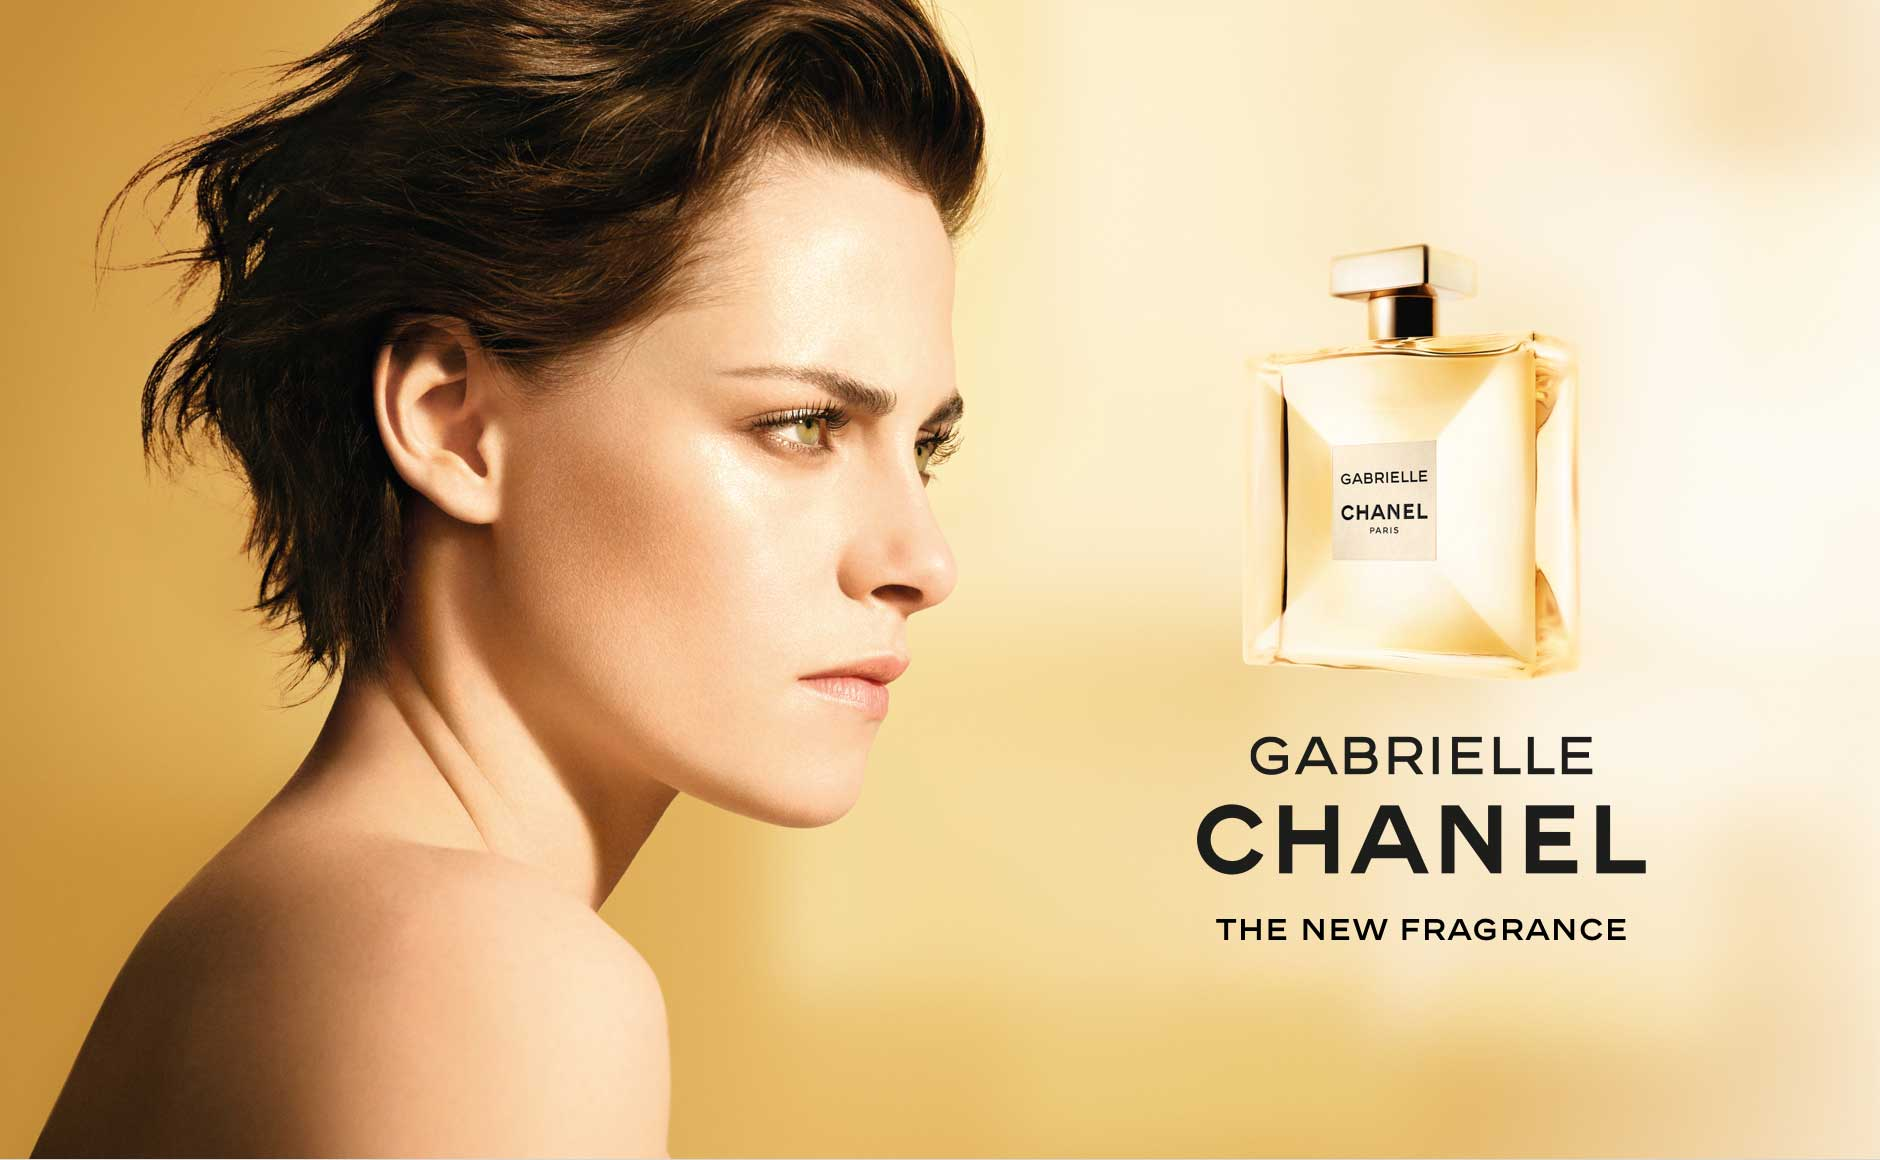 Gabrielle: Chanel - The New Fragrance